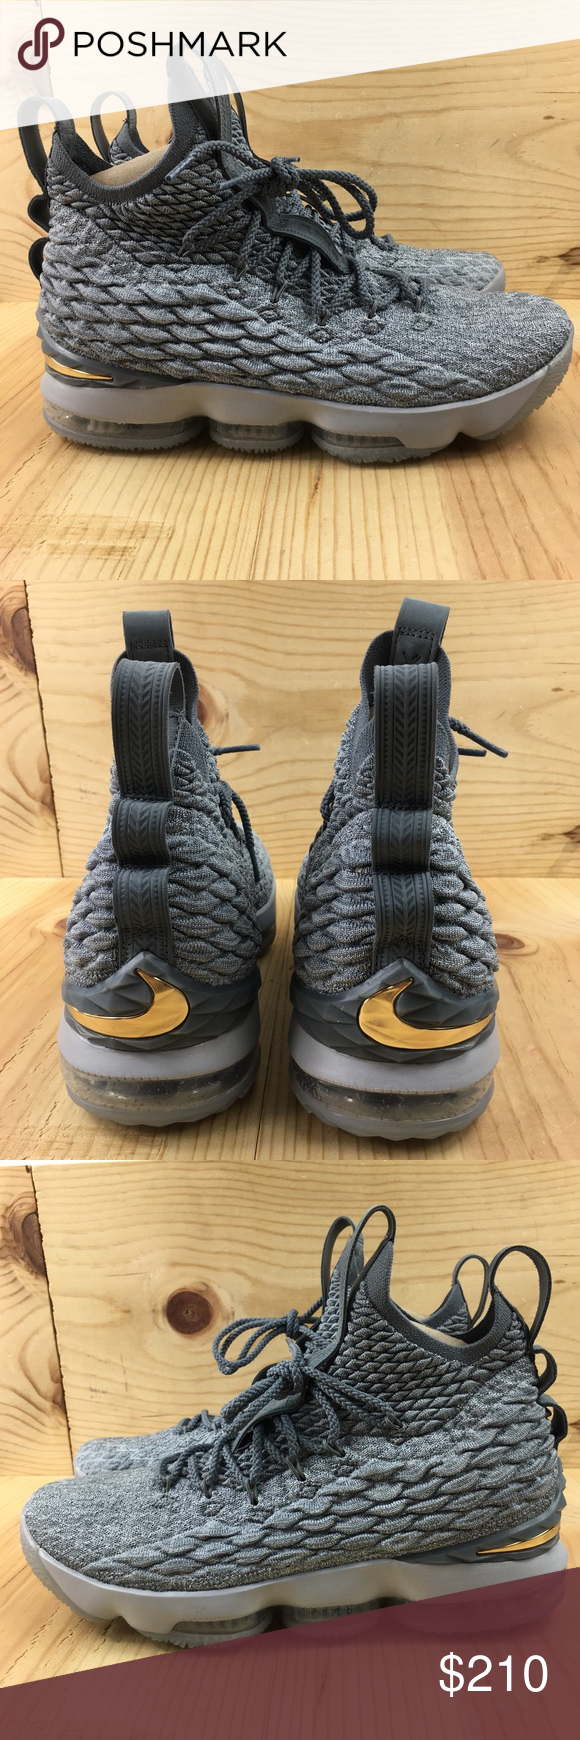 ced0a61c25f Nike Lebron XV Size 9.5 Basketball Shoes Mens Gray Nike Lebron XV Size 9.5  Basketball Shoes Mens Gray Metallic Gold Brand New without Box Product  code  ...